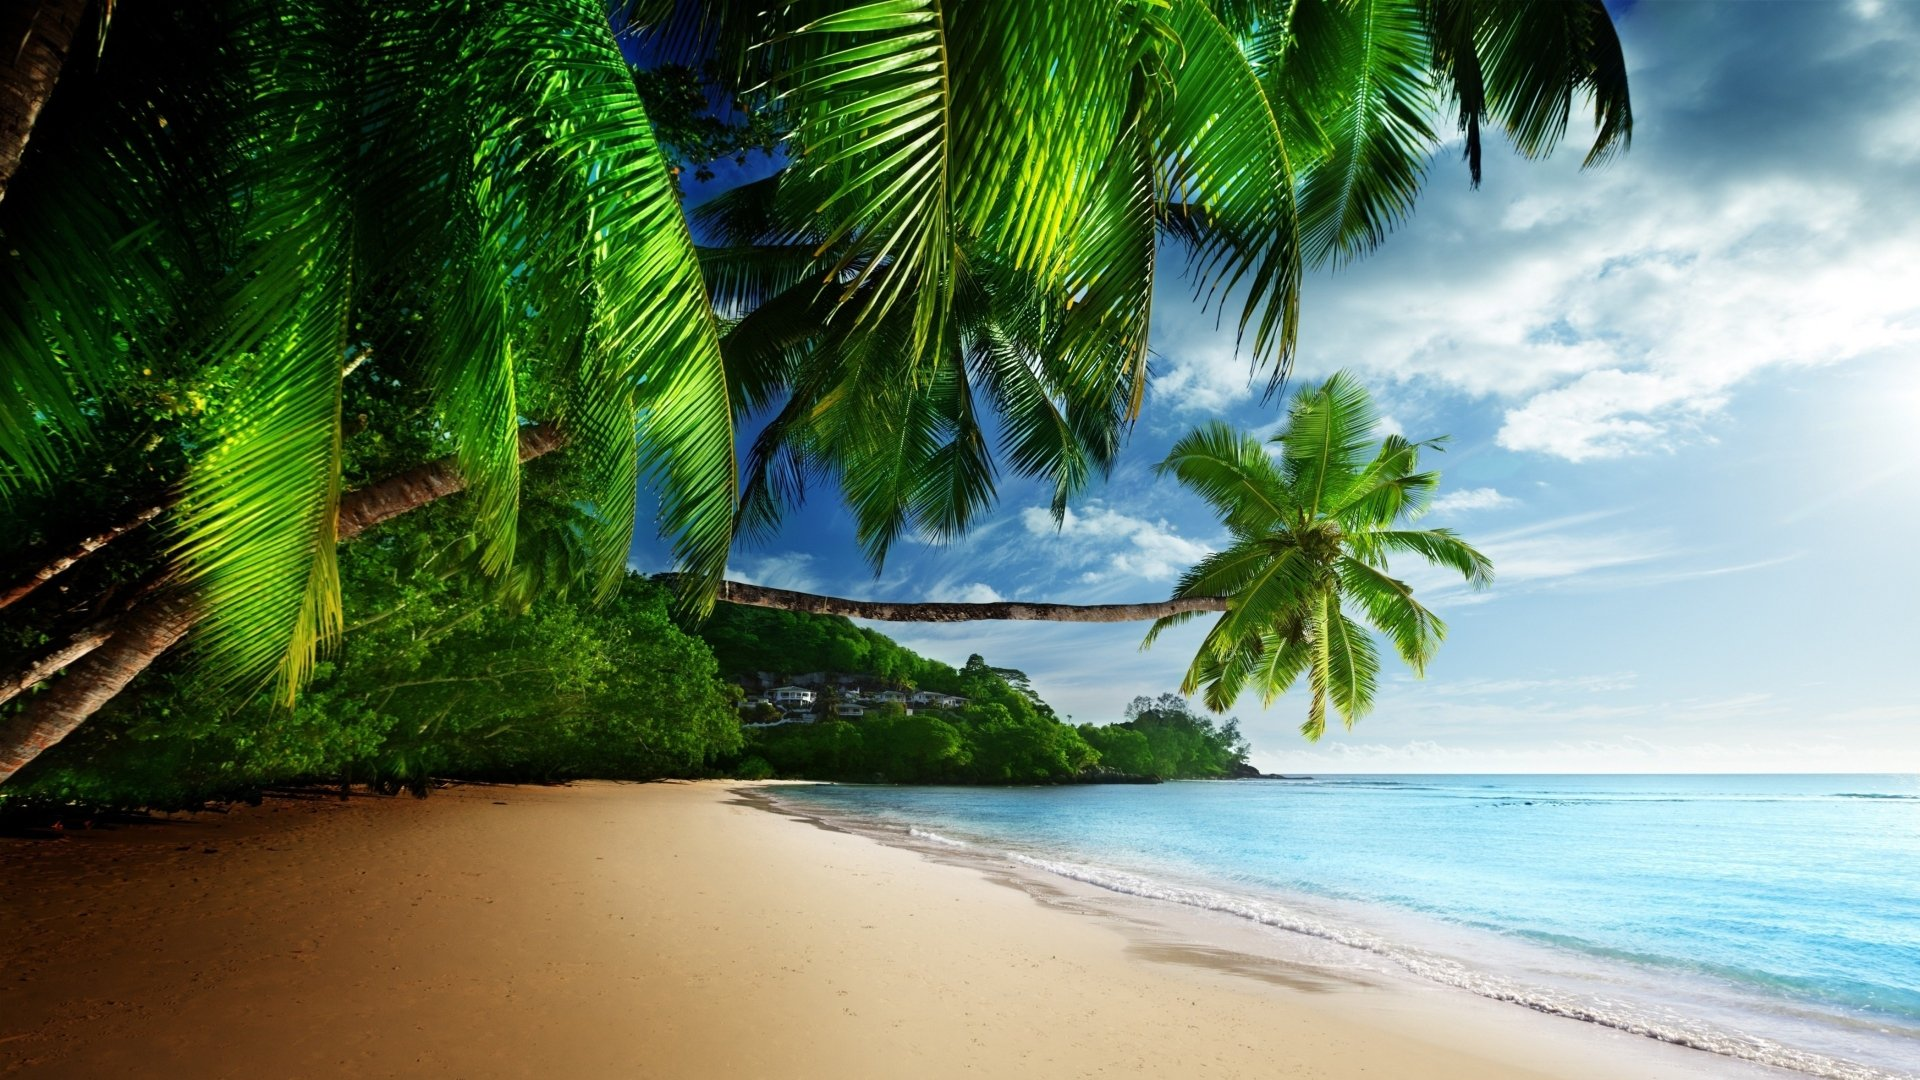 Earth - Tropical  Palm Tree Seashore Earth Beach Ocean Sea Wallpaper